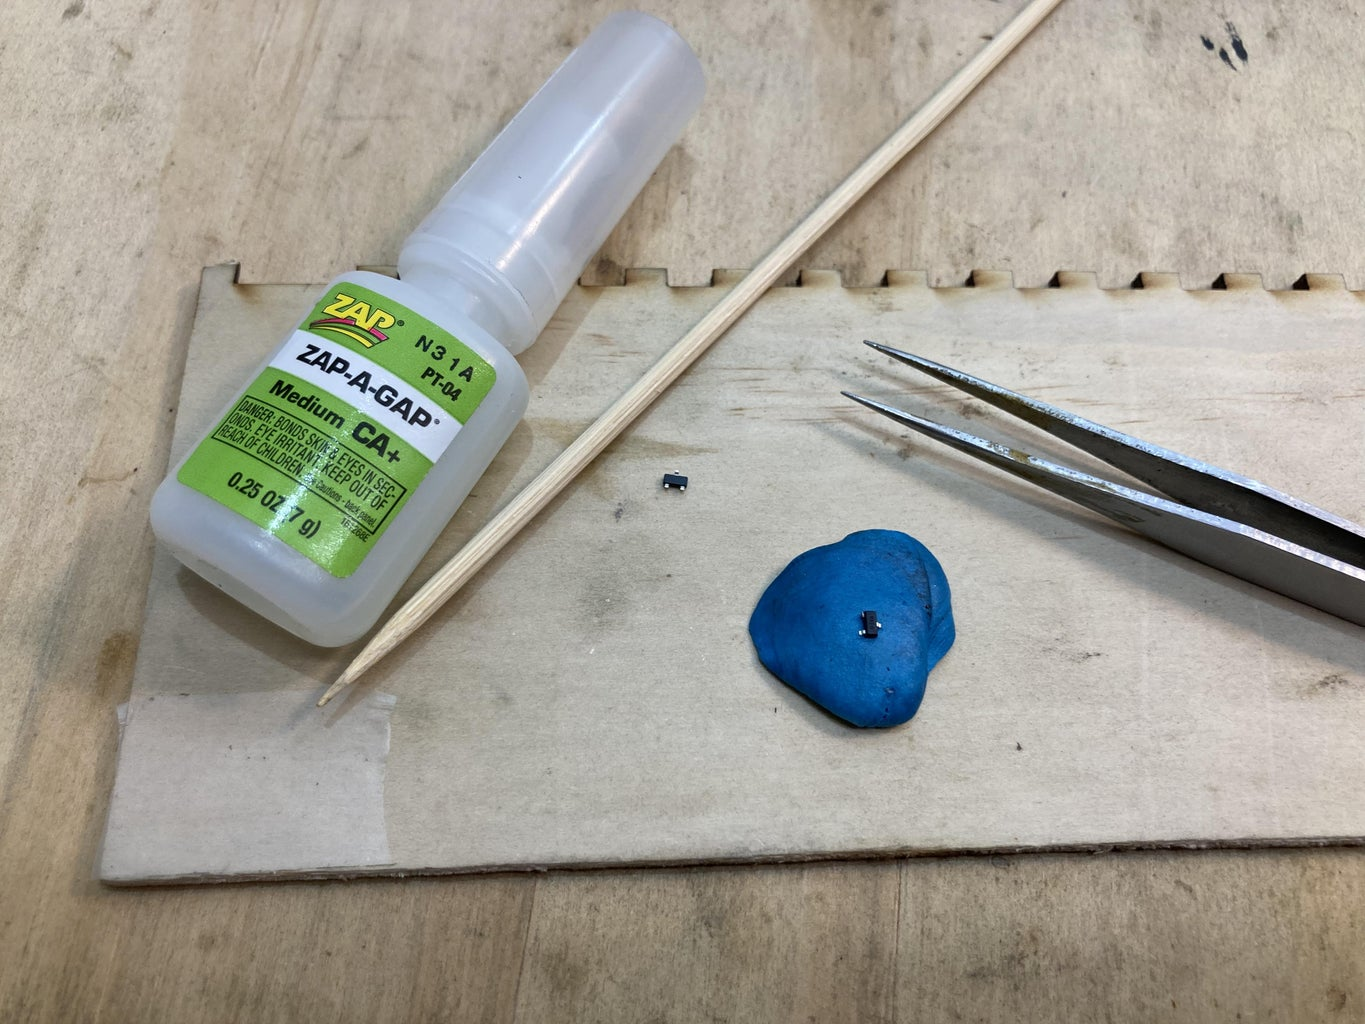 Freeforming the Circuit 1.5: Gluing the Circuit Together